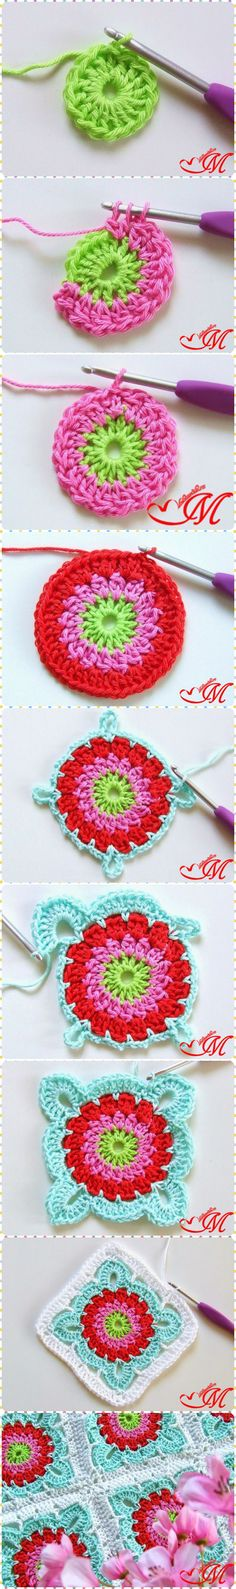 How to Crochet Granny Square Blanket -